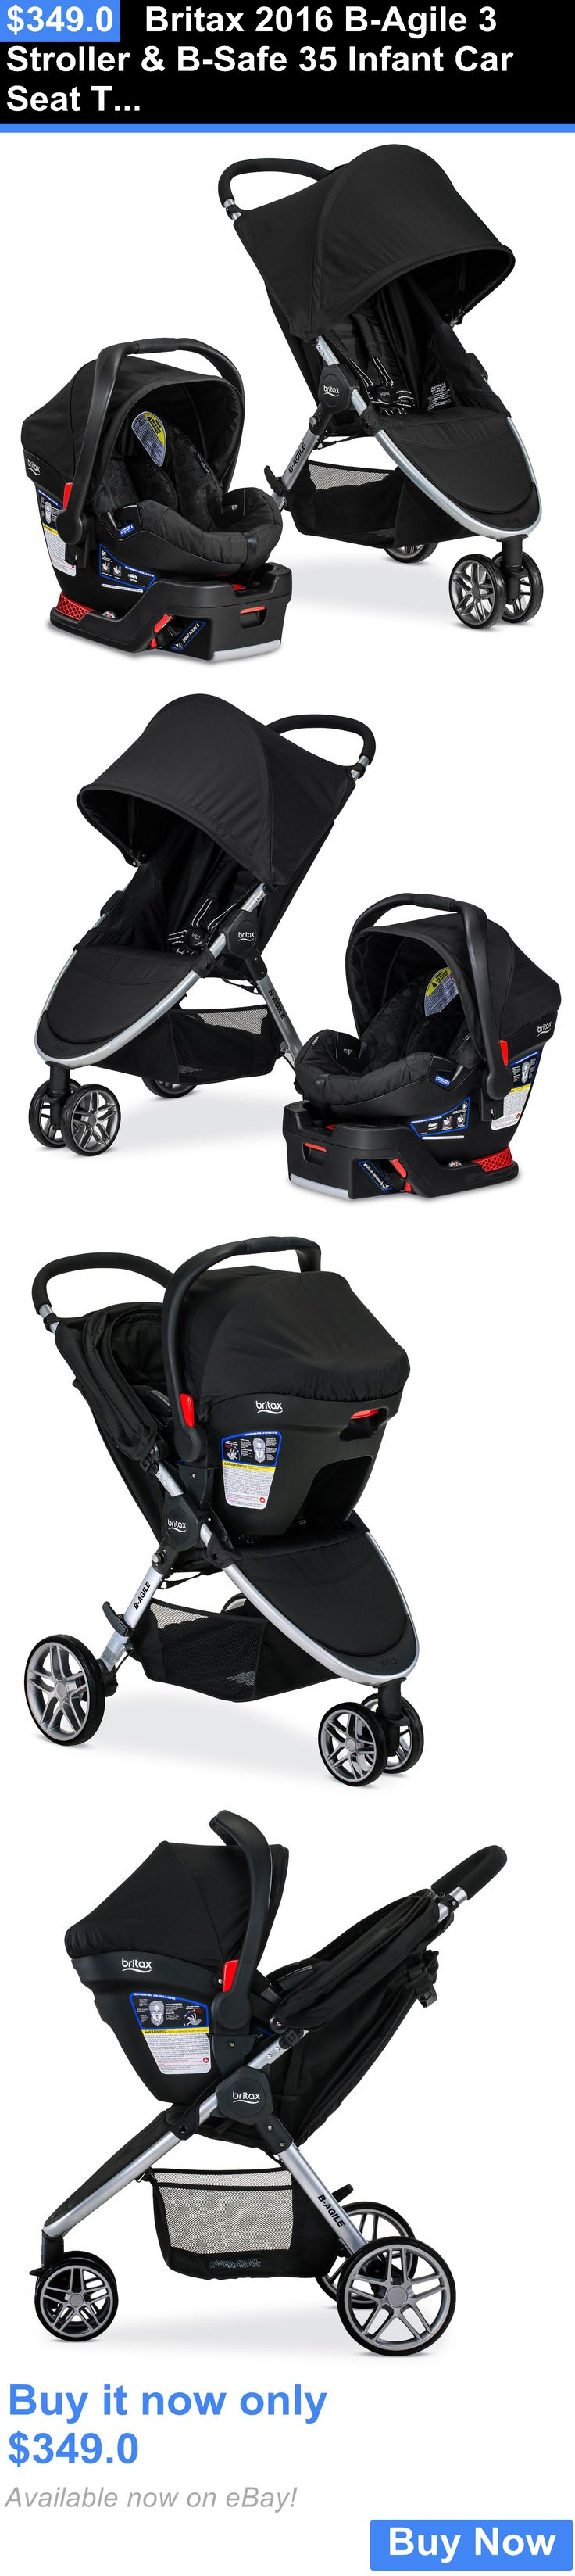 Baby: Britax 2016 B-Agile 3 Stroller And B-Safe 35 Infant Car Seat Travel System Black!! BUY IT NOW ONLY: $349.0